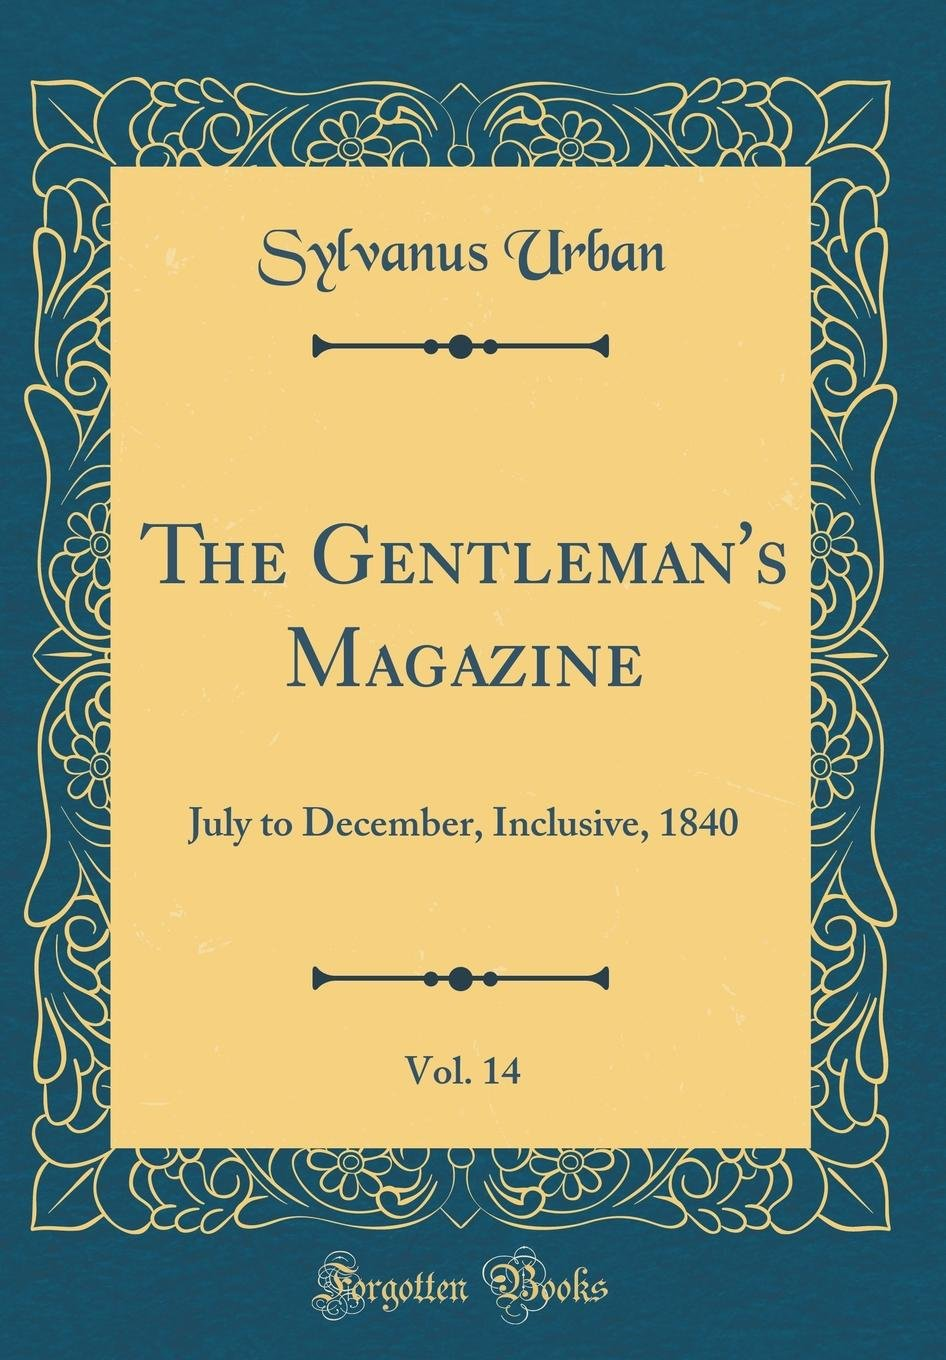 Download The Gentleman's Magazine, Vol. 14: July to December, Inclusive, 1840 (Classic Reprint) ebook